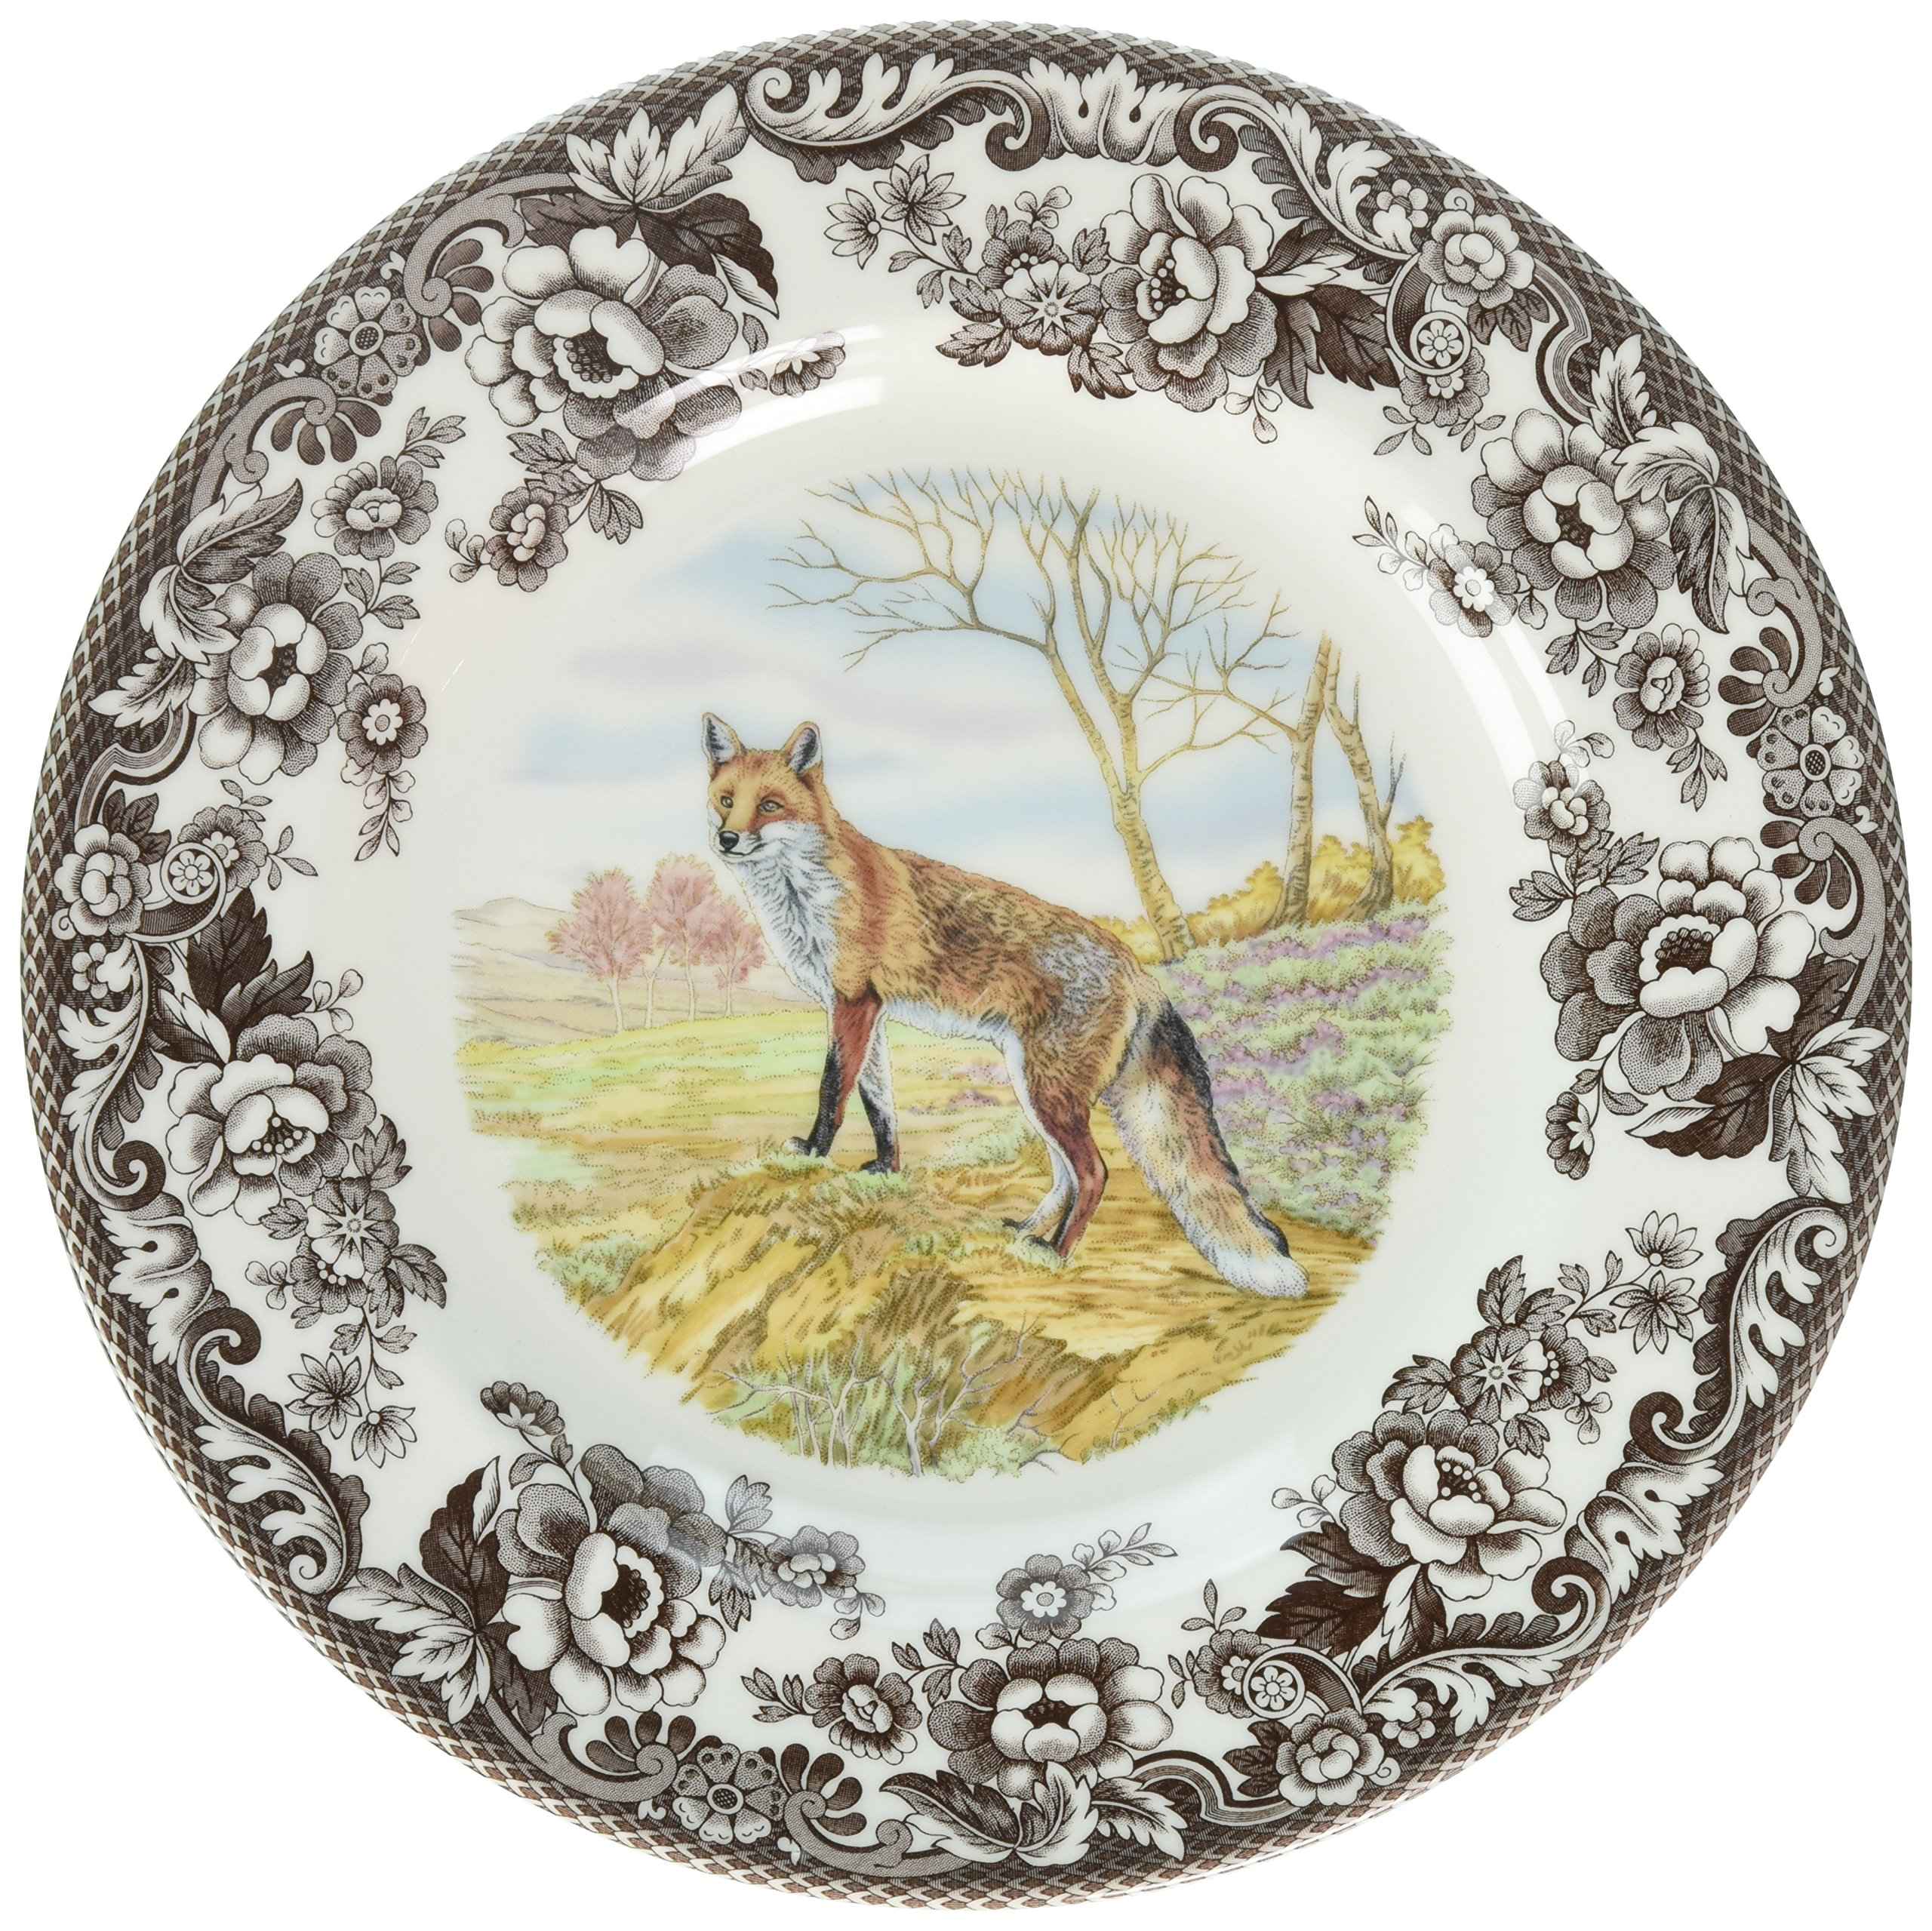 Spode 1607262 Woodland Red Fox Dinner Plate